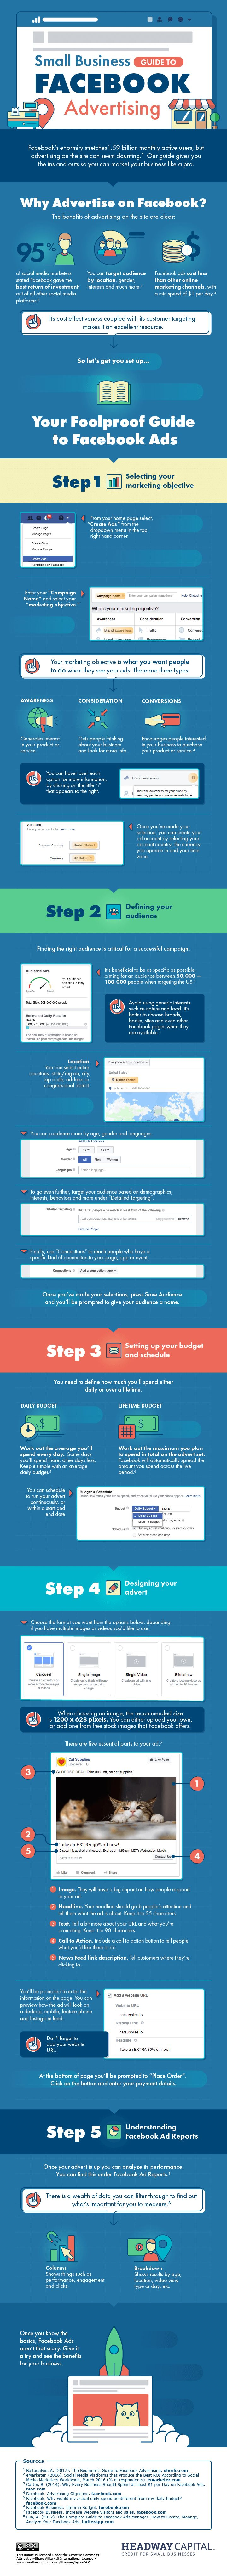 The Foolproof Guide to Advertising Your Small Business on Facebook [Infographic] - http://topseosoft.com/the-foolproof-guide-to-advertising-your-small-business-on-facebook-infographic/